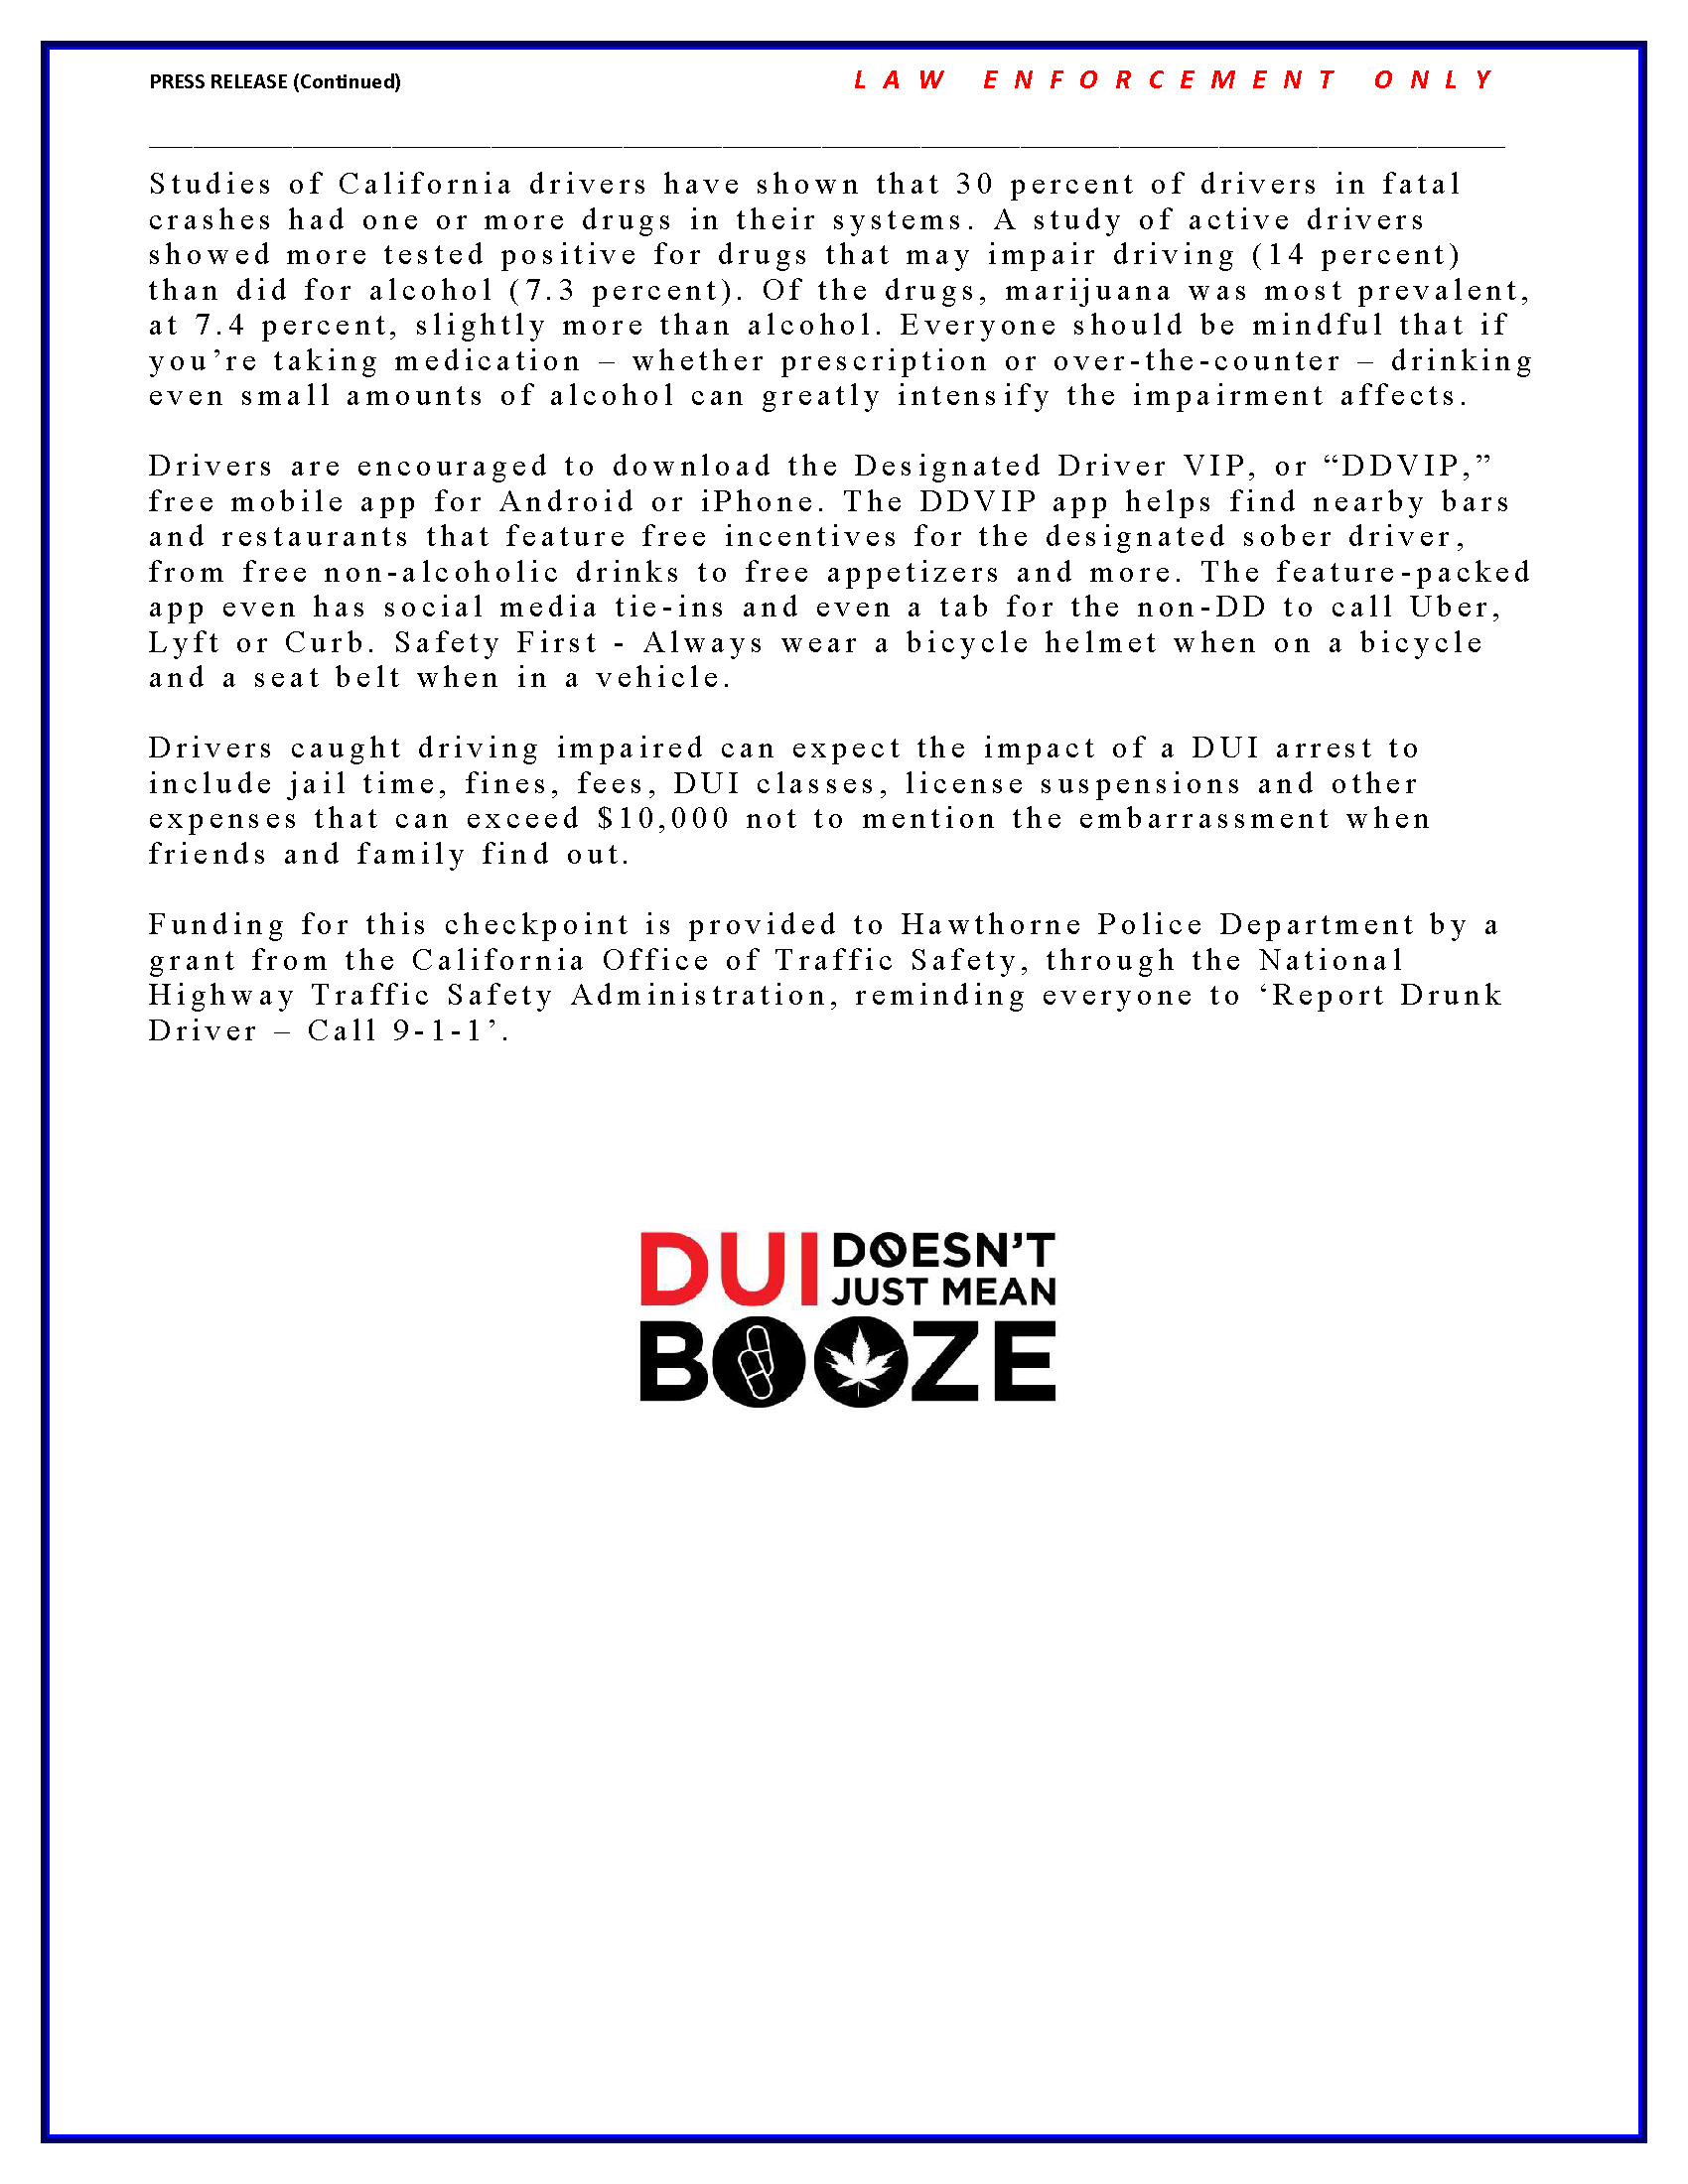 DUI Checkpoint Press Release 02-02-18_Page_2.png